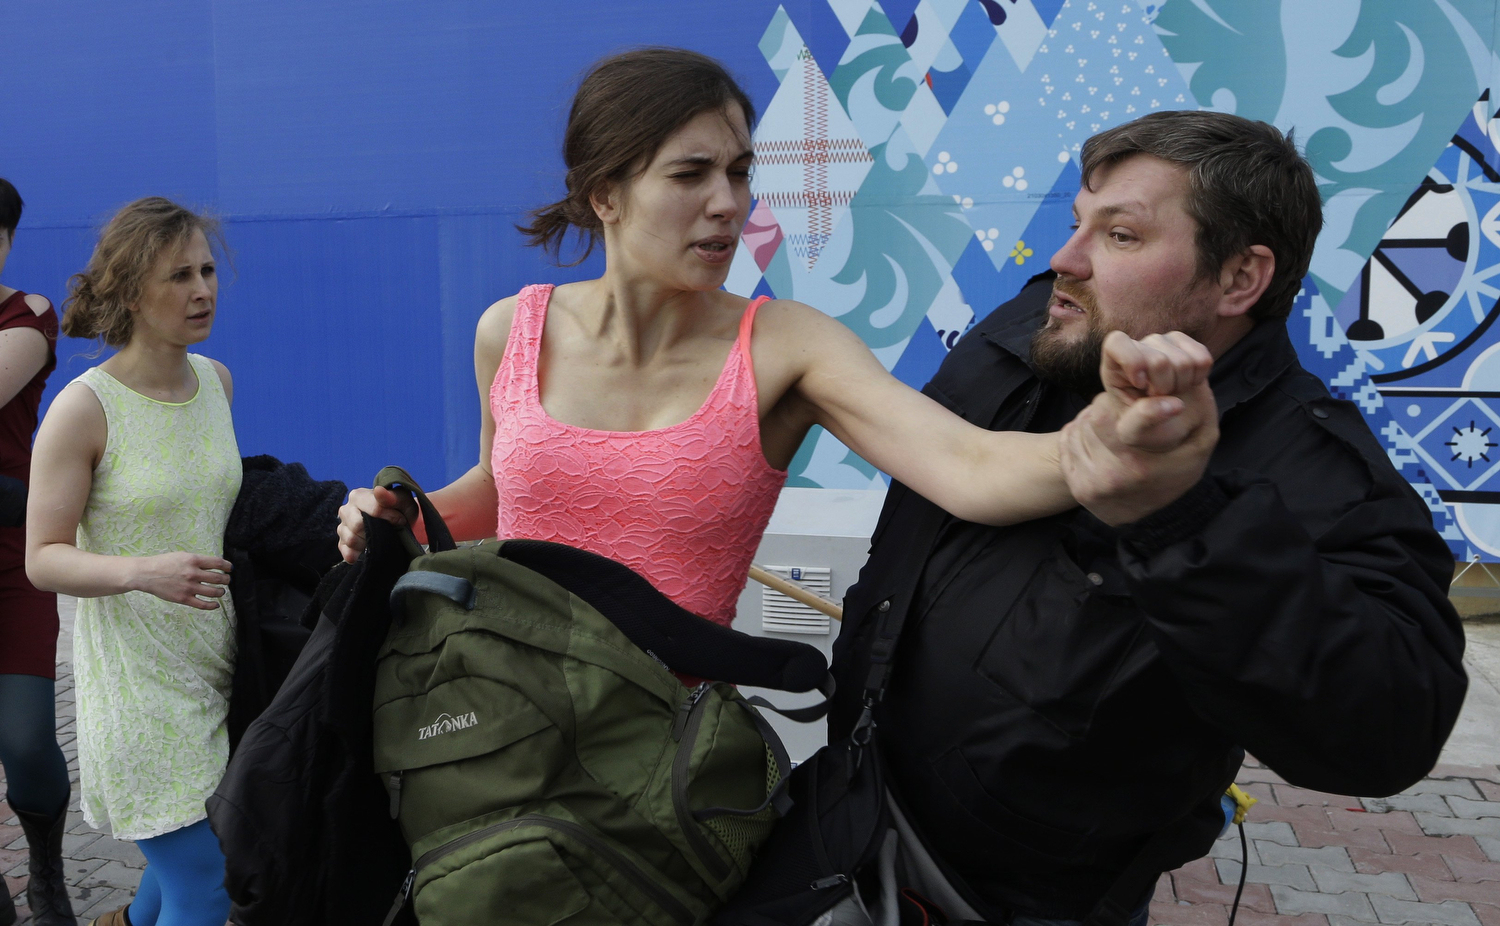 A Russian security officer attacks Nadezhda Tolokonnikova and a photographer as she and fellow members of the punk group Pussy Riot, including Maria Alekhina, left, stage a protest performance in Sochi, Russia, on Wednesday, Feb. 19, 2014.